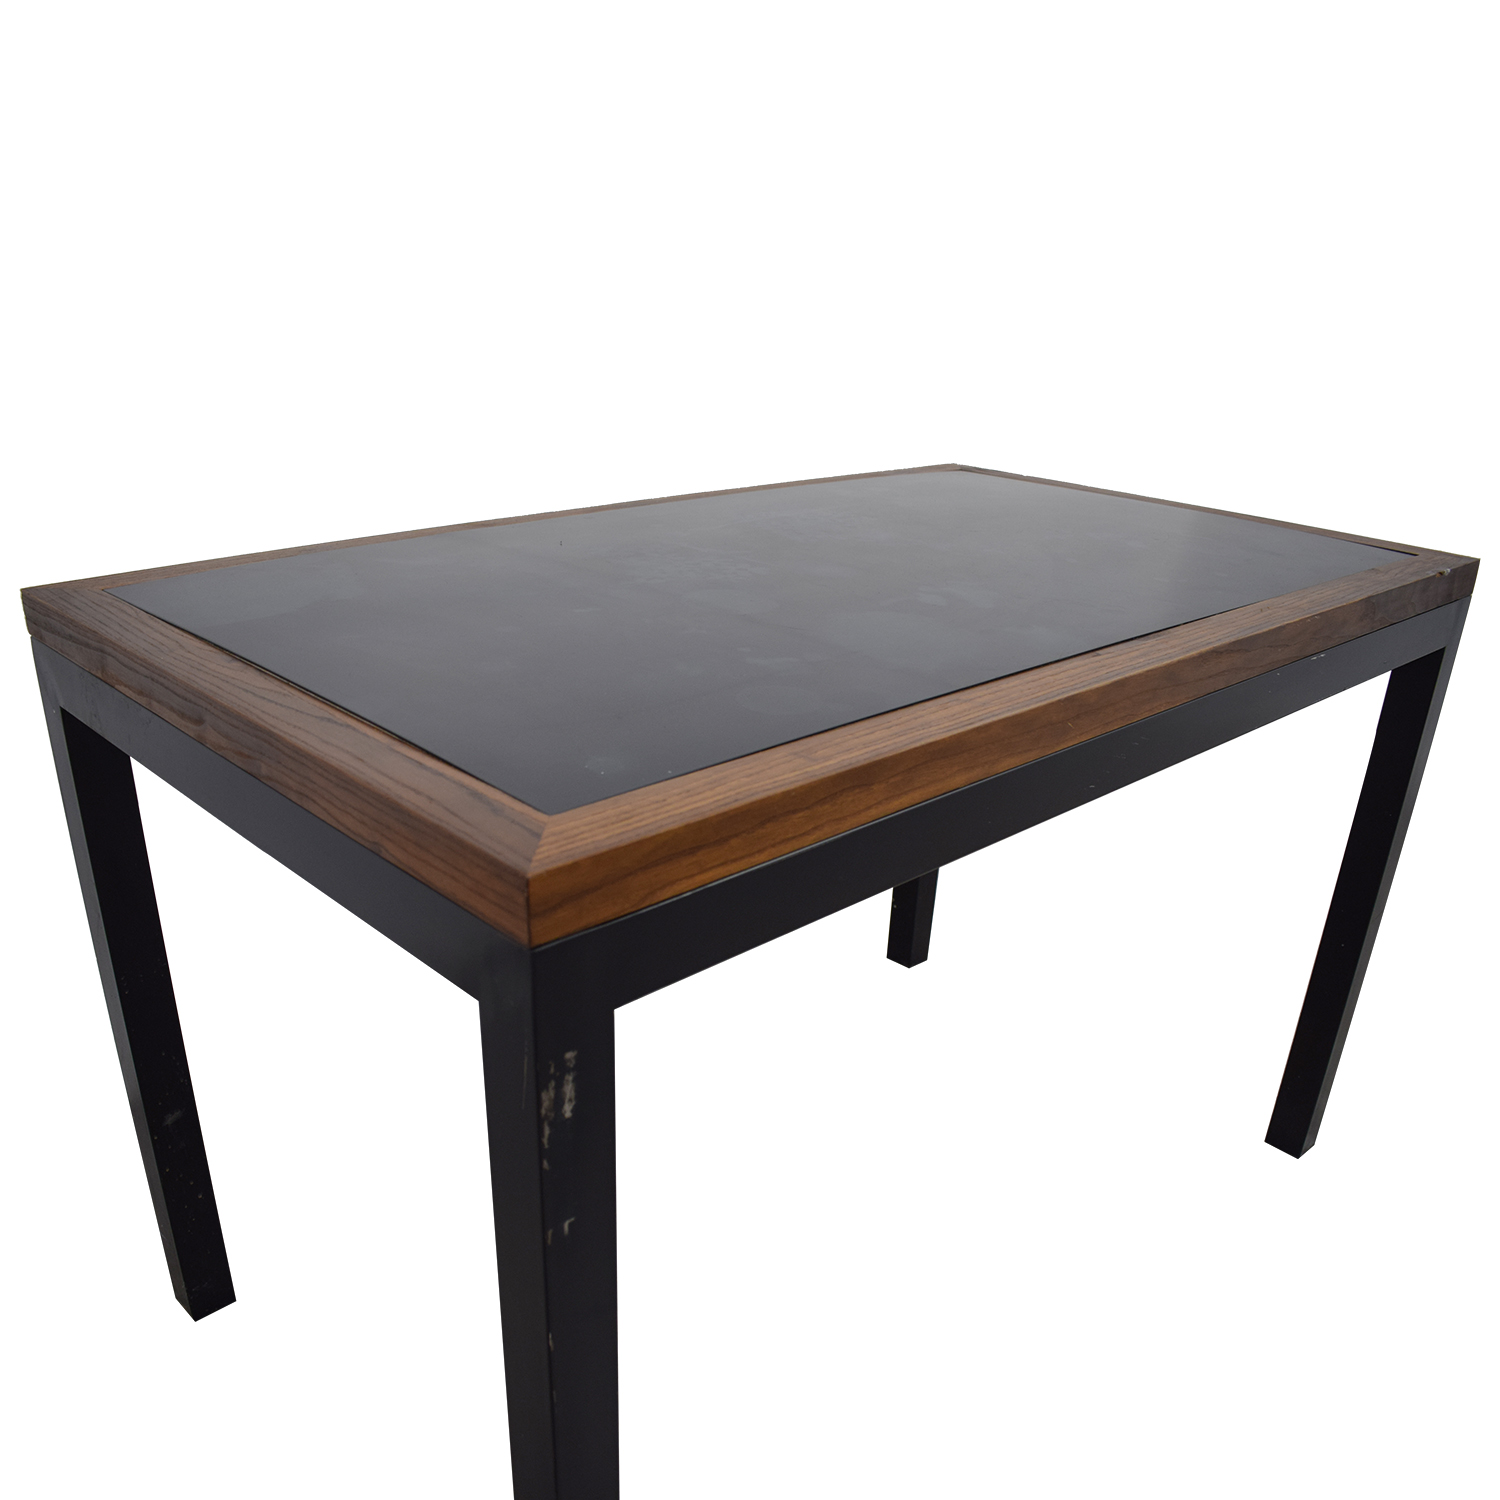 Off black wood and metal table tables